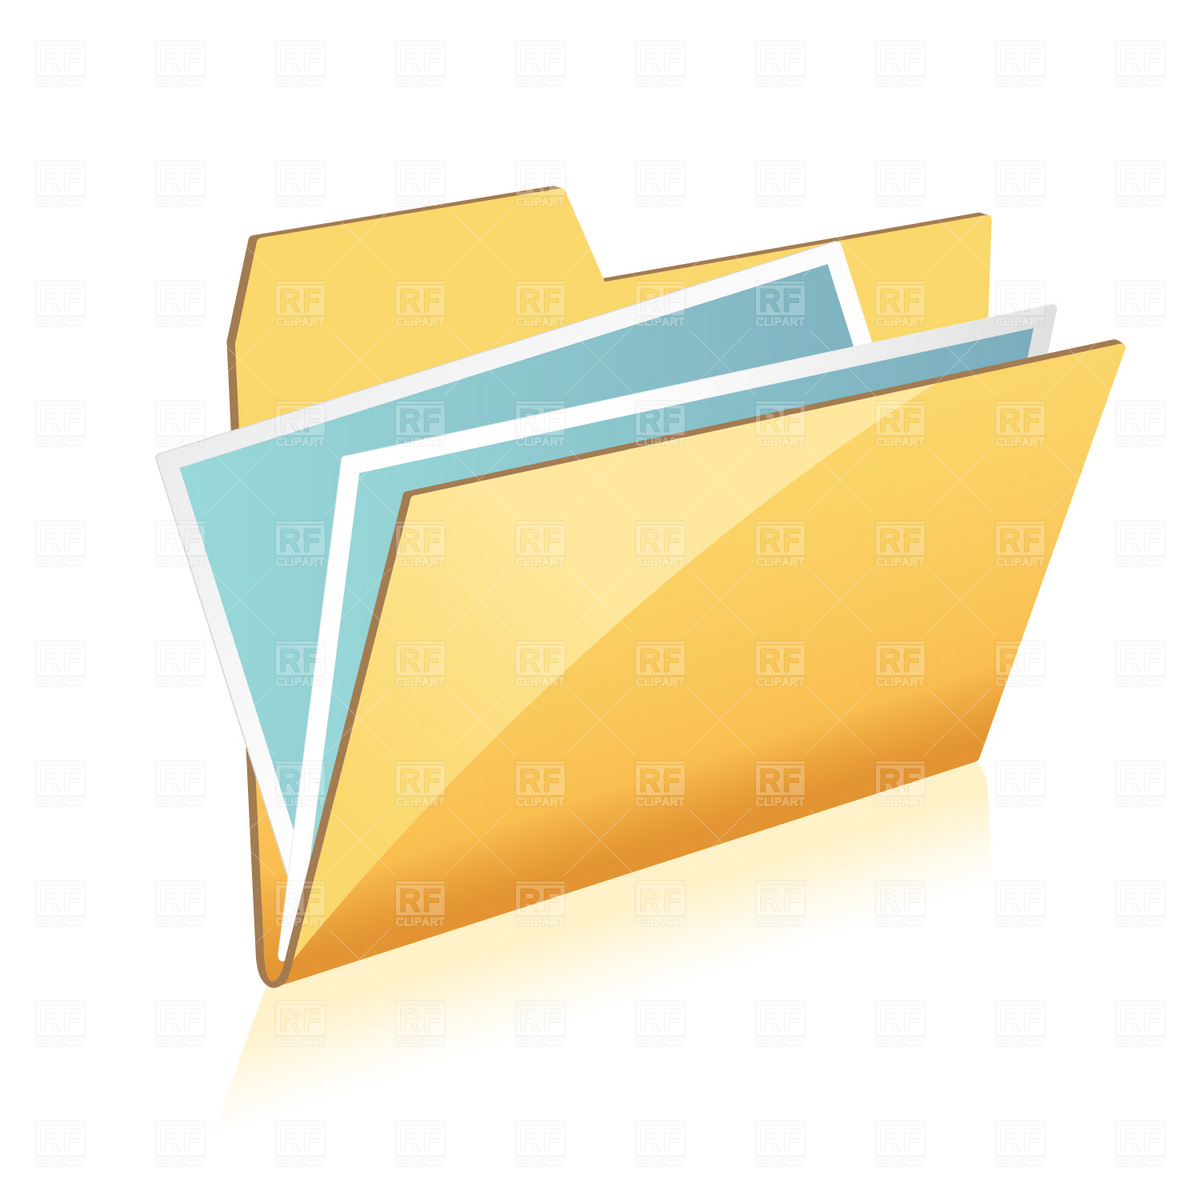 8 Computer File Folder Icon Images